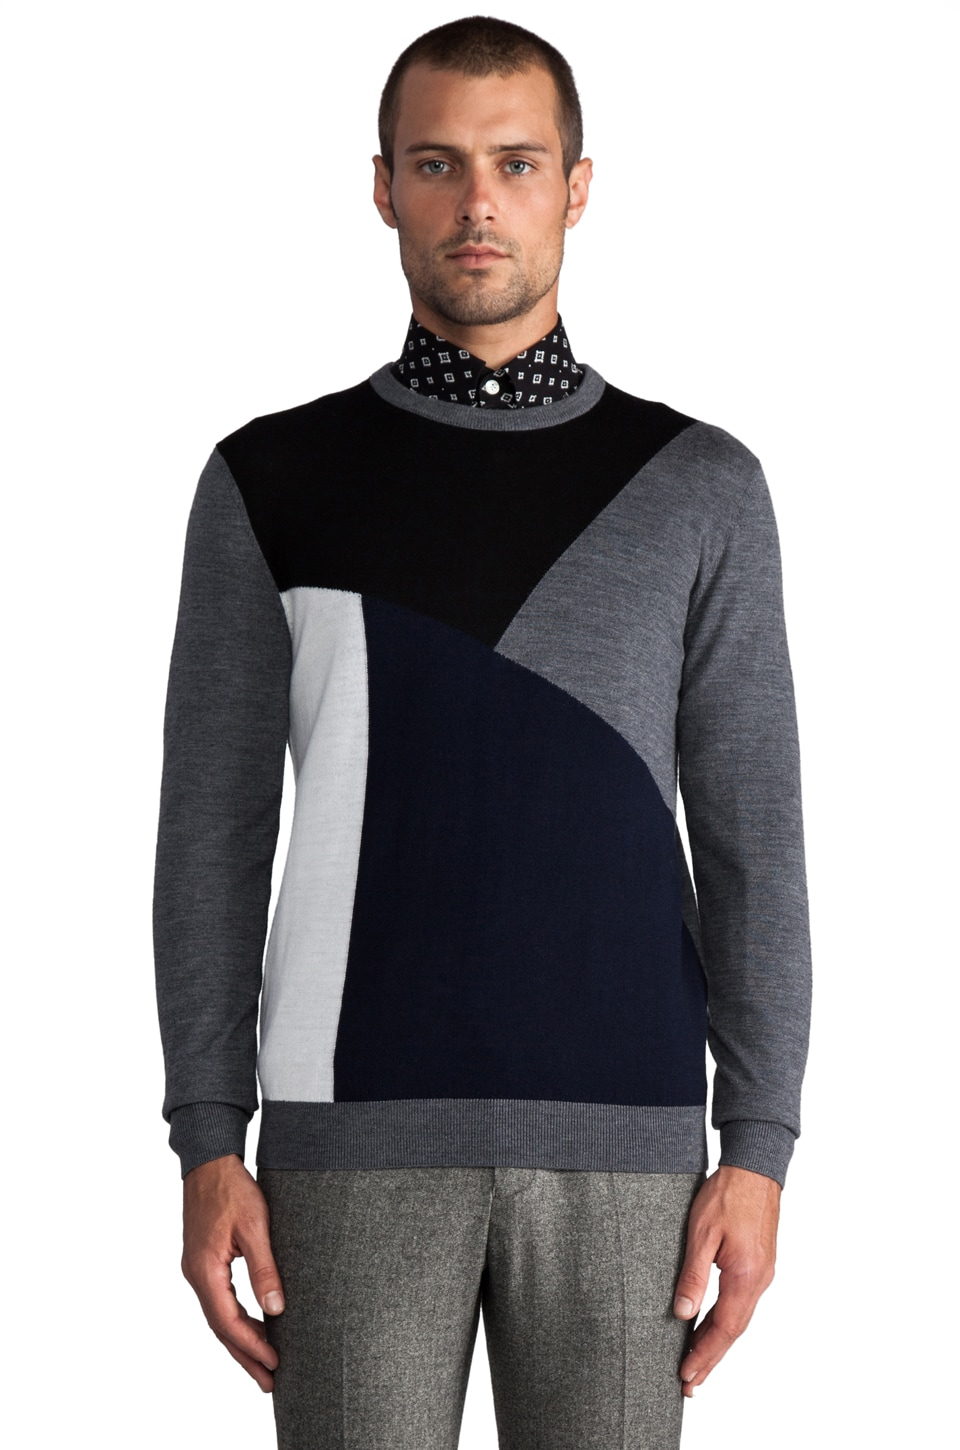 Hentsch Man Intarsia Sweater in Navy